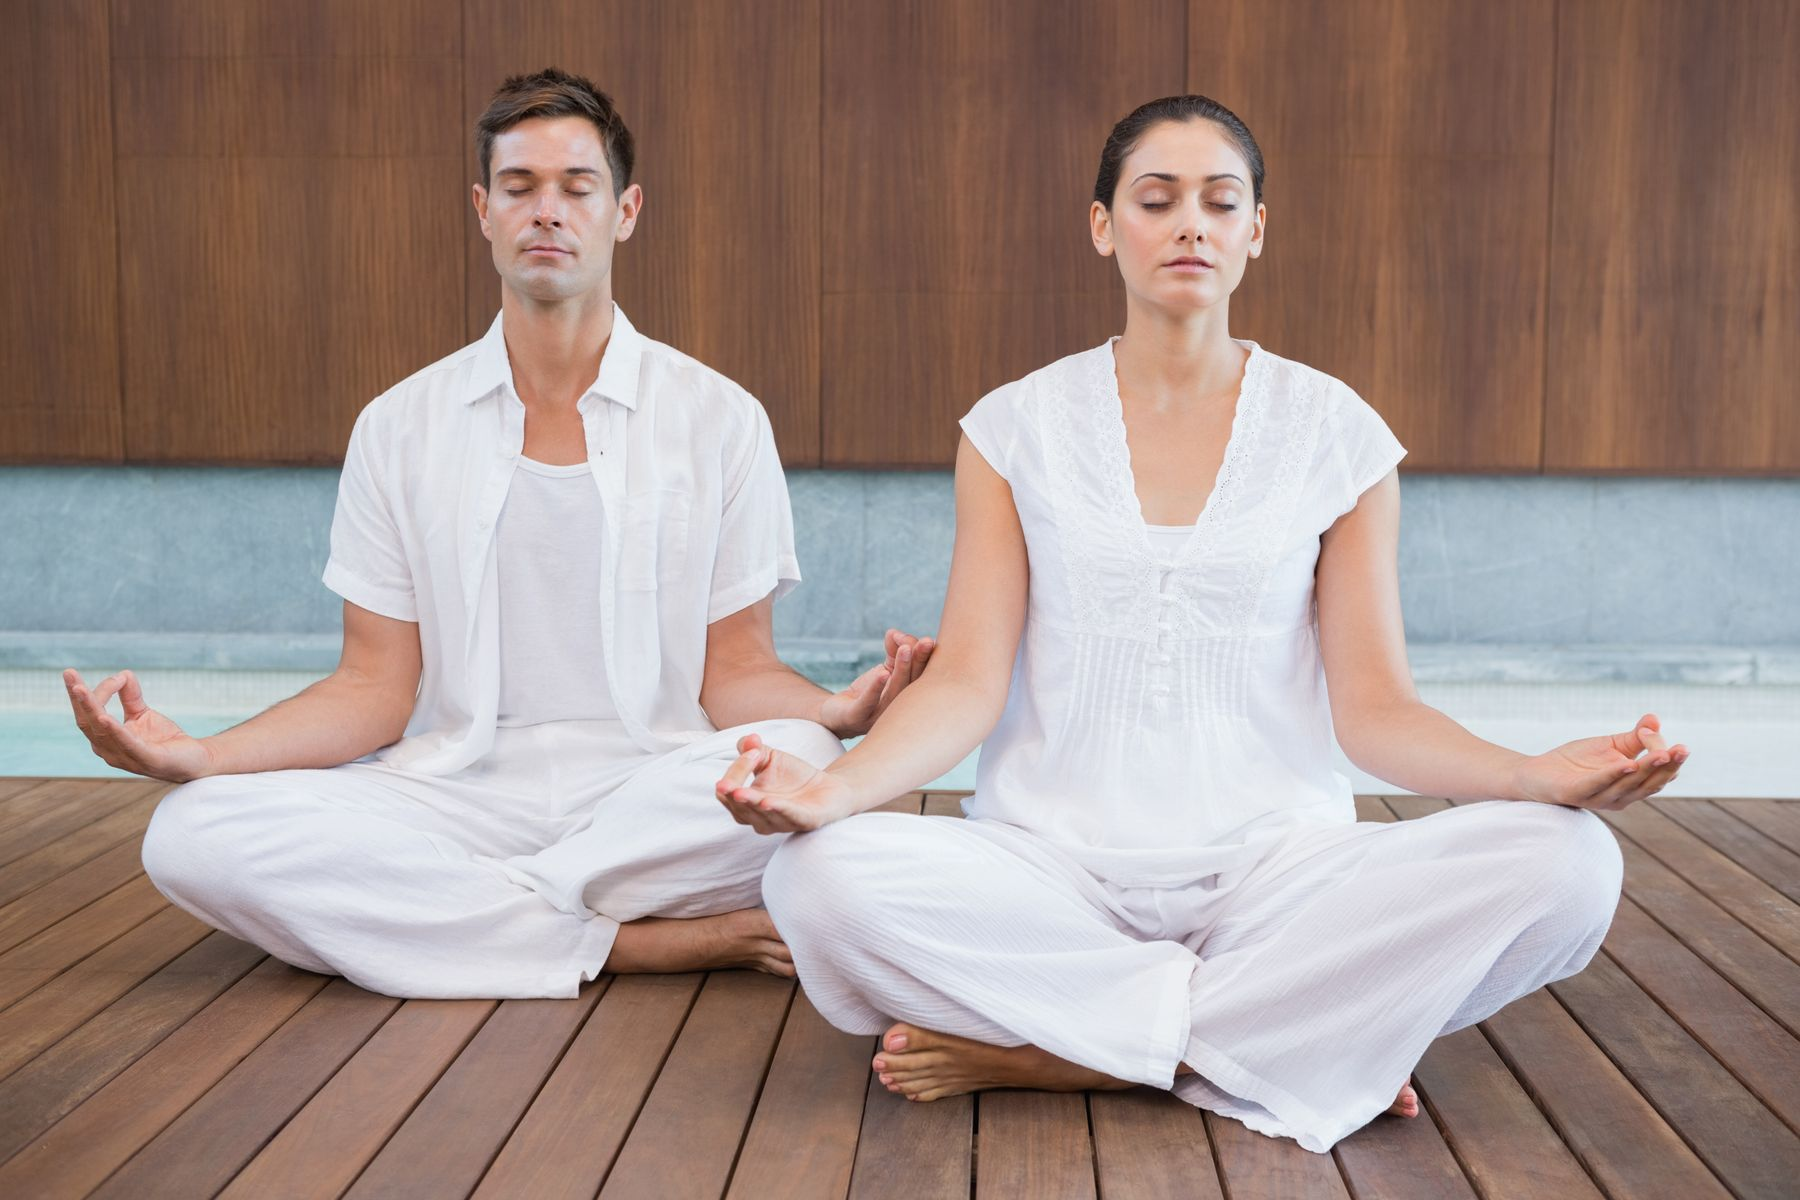 two people meditating in a peaceful space